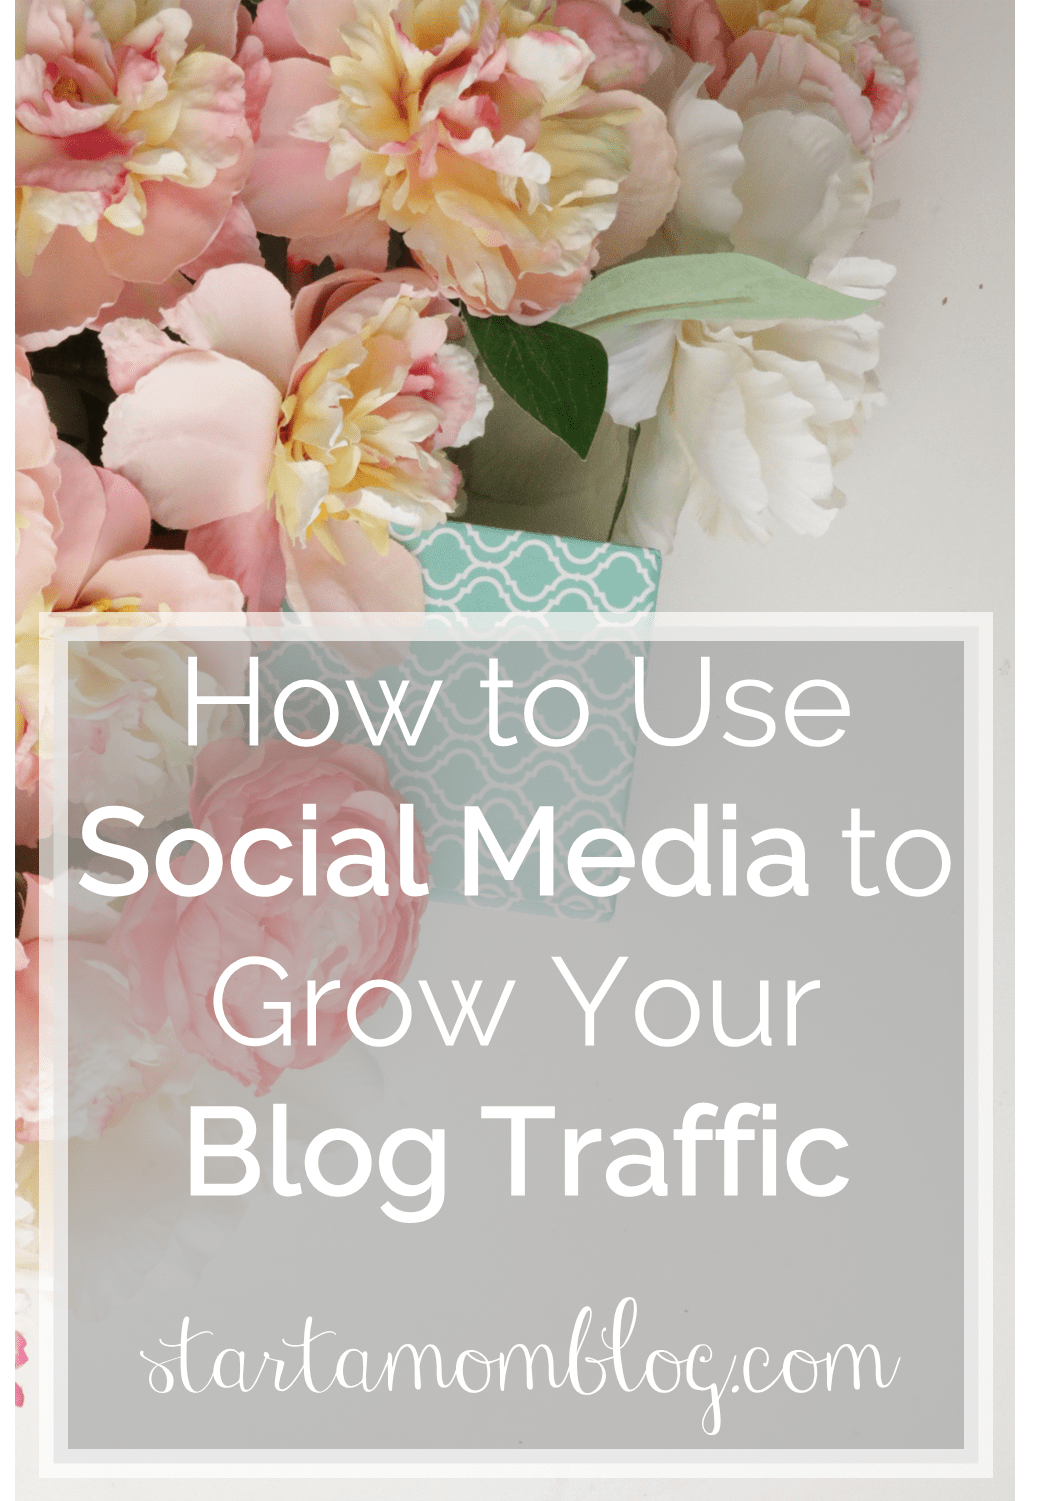 How to use Social Media to grow your Blog Traffic www.startamomblog.com